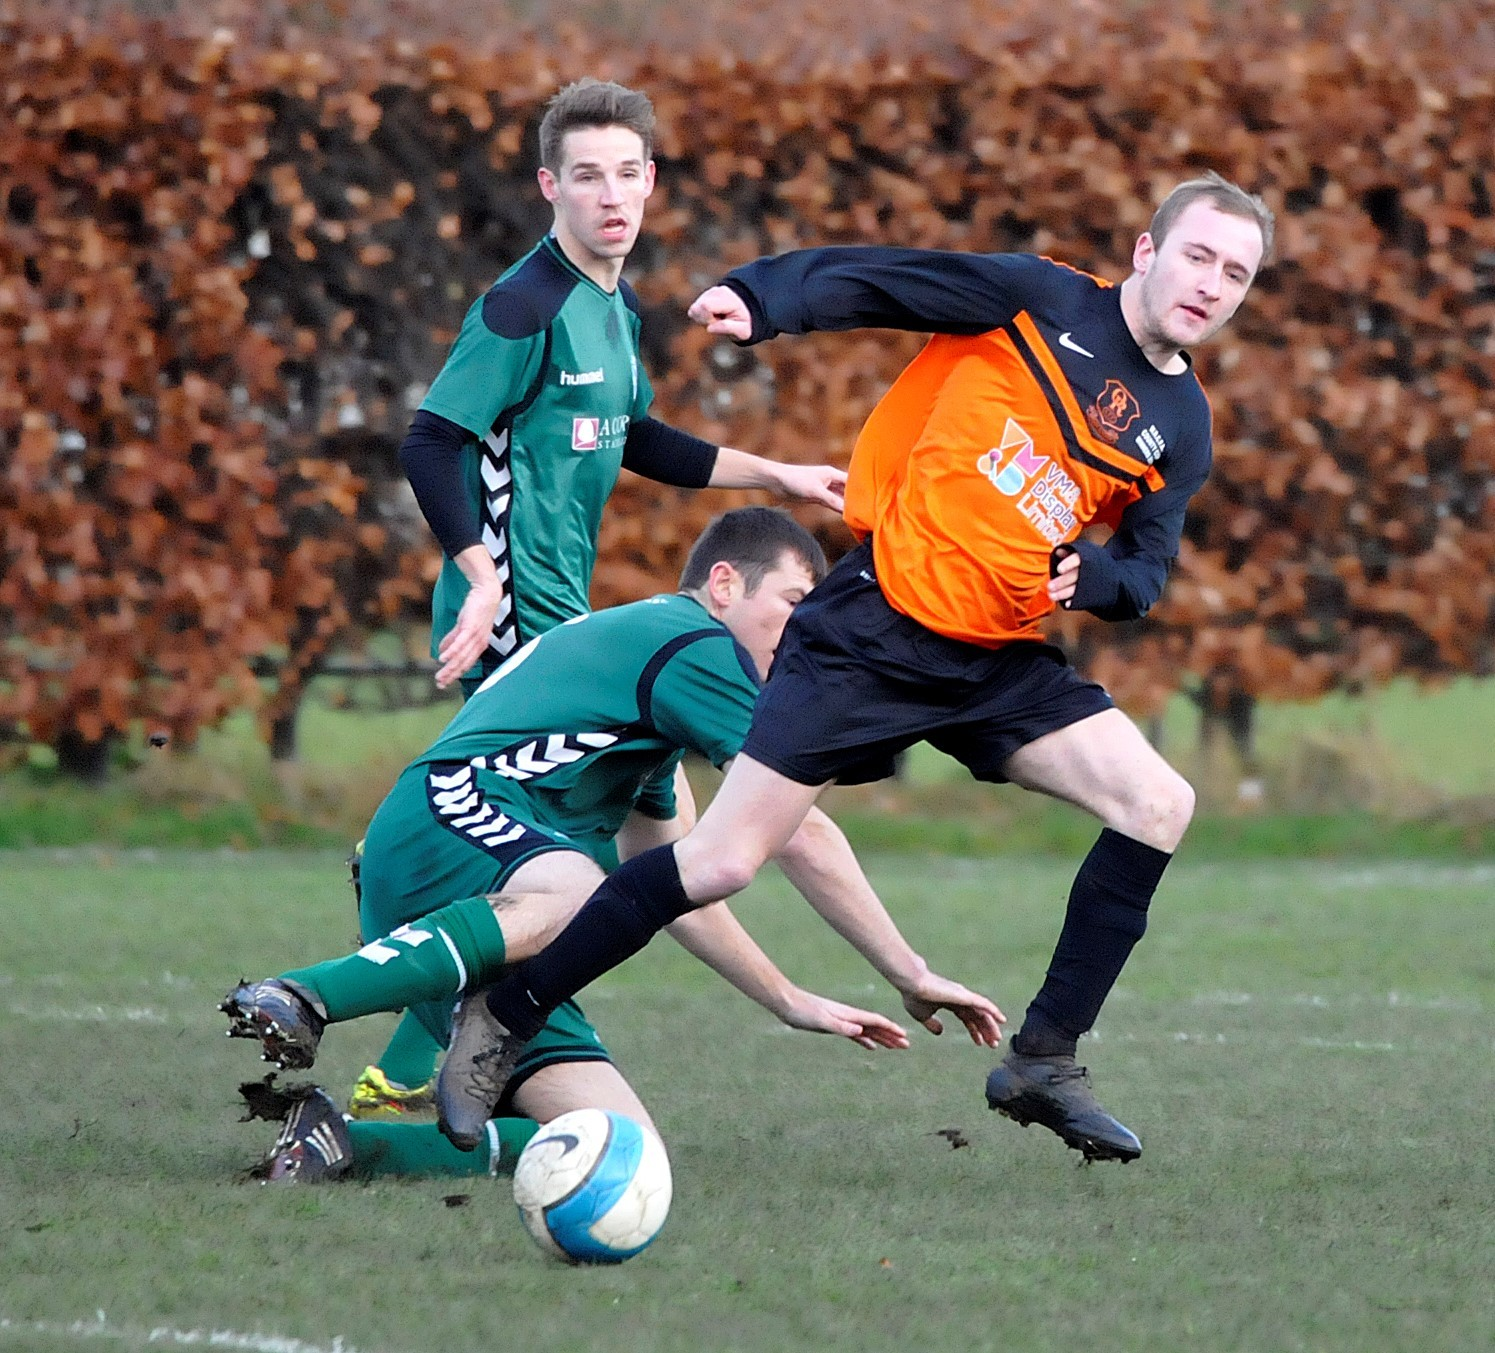 Tom Marshall, right, scored twice for Oxenhope Recreation against Cross Hills